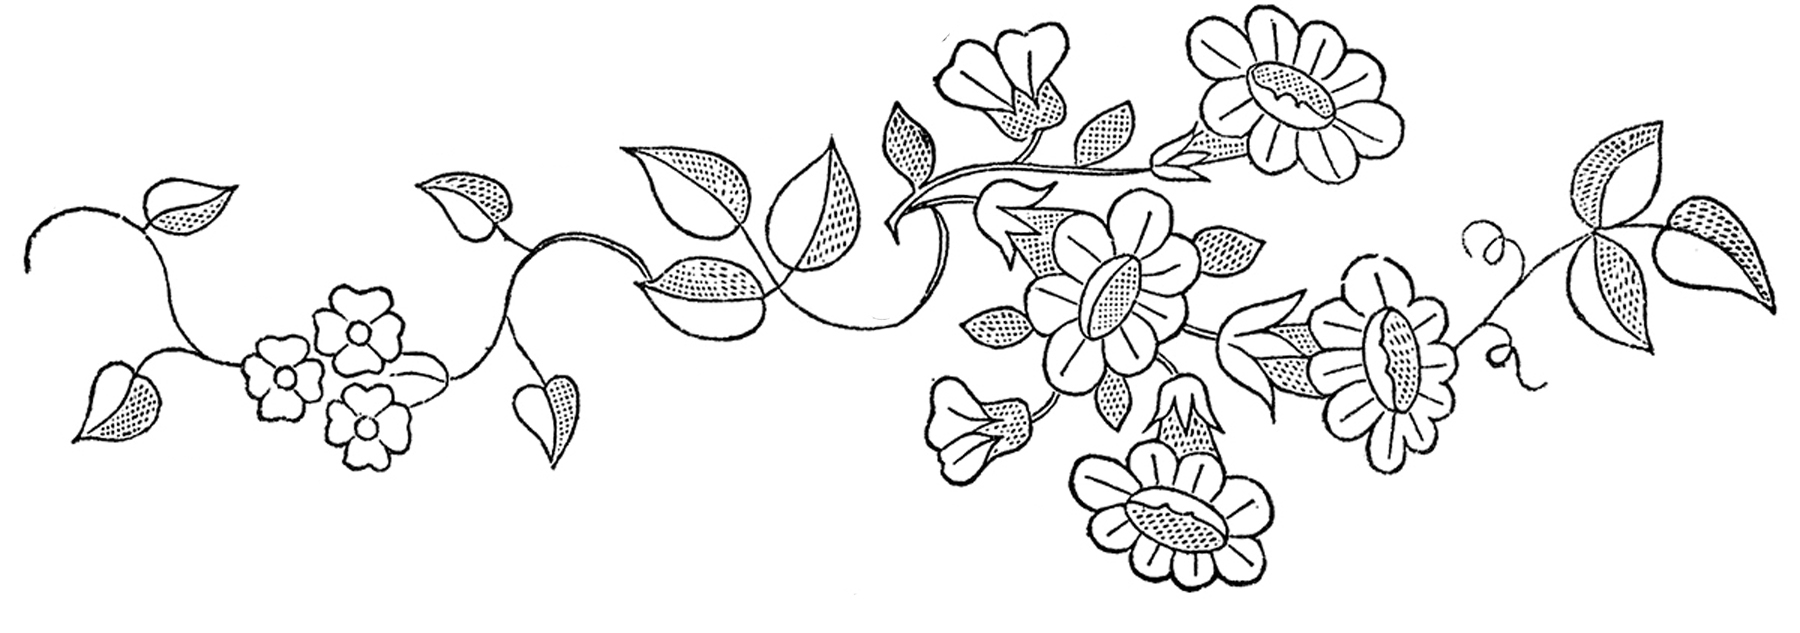 Embroidery Designs Patterns Hand Embroidery Patterns Digitemb